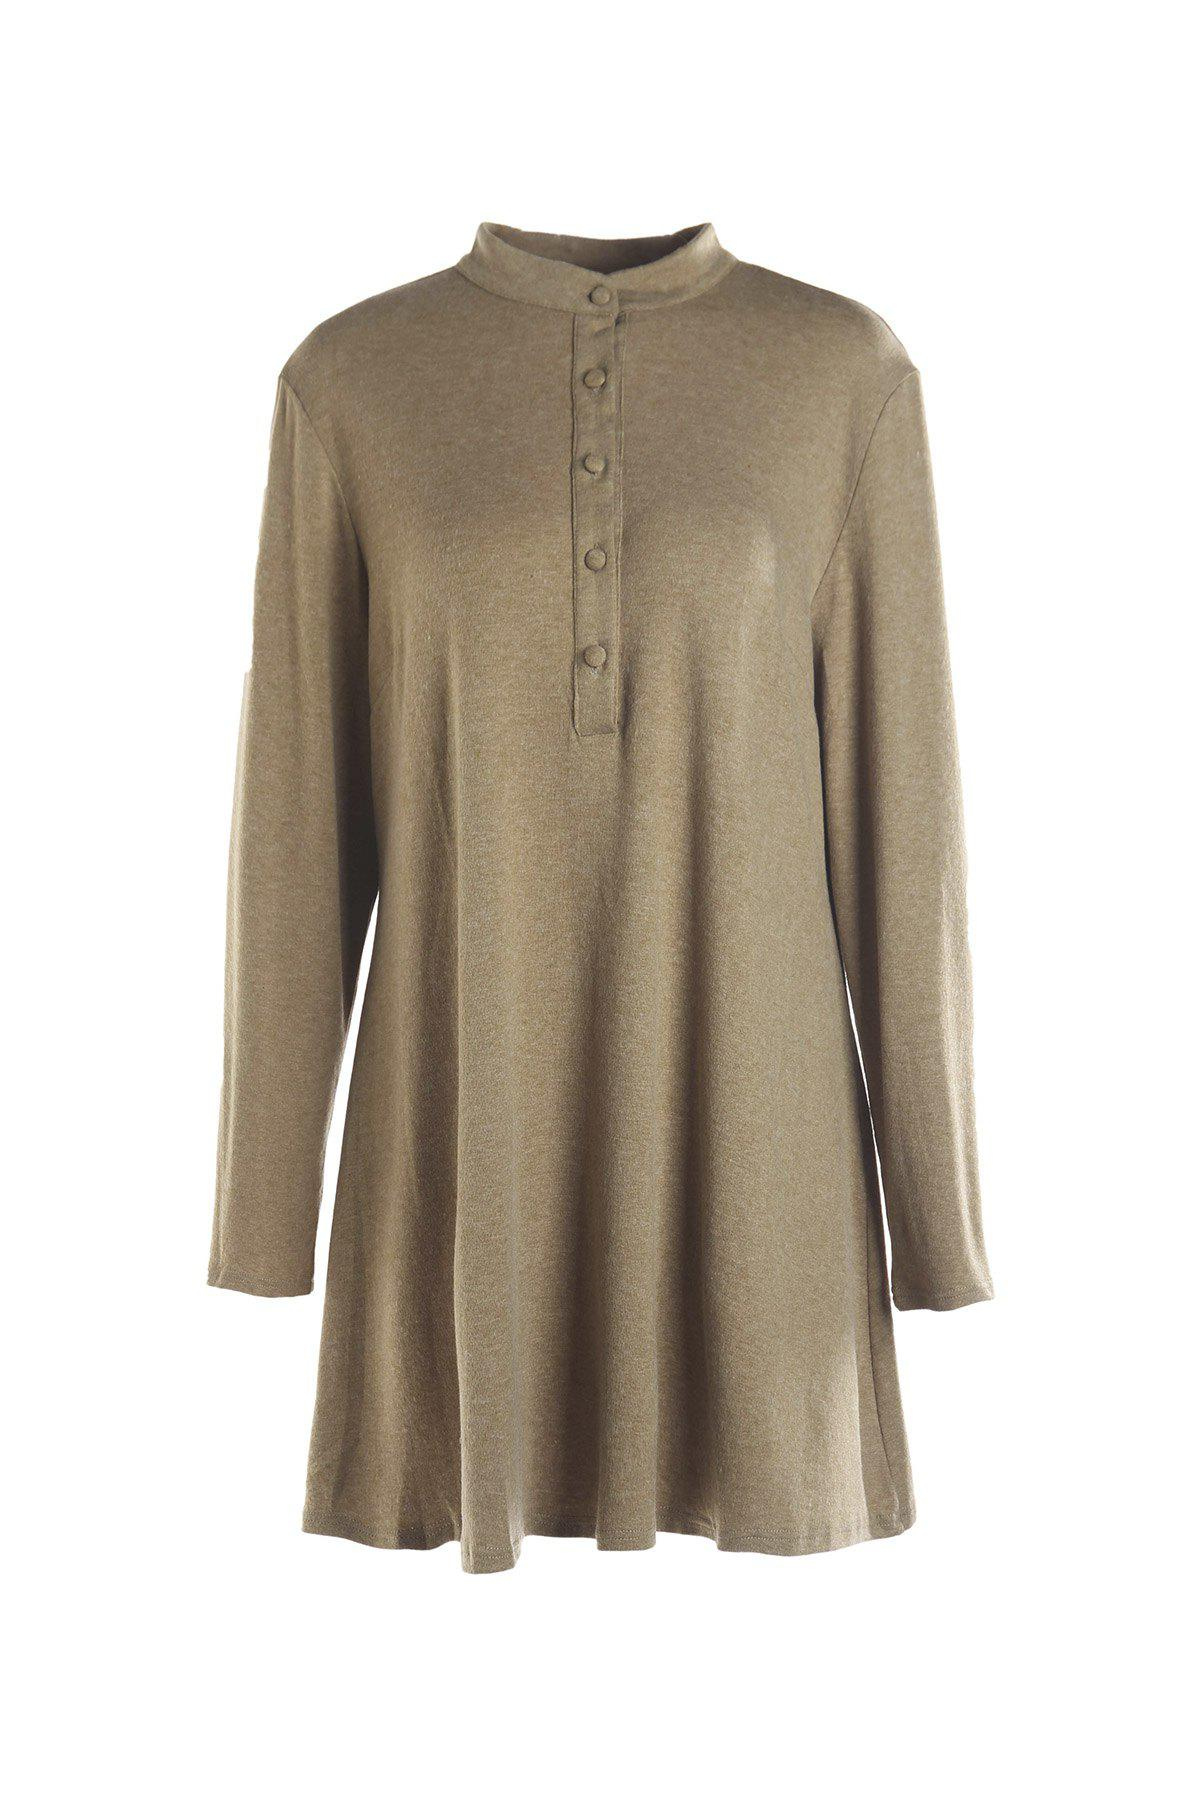 Casual Stand Collar Solid Color Plus Size Long Sleeve Women's Dress - DARK KHAKI 3XL